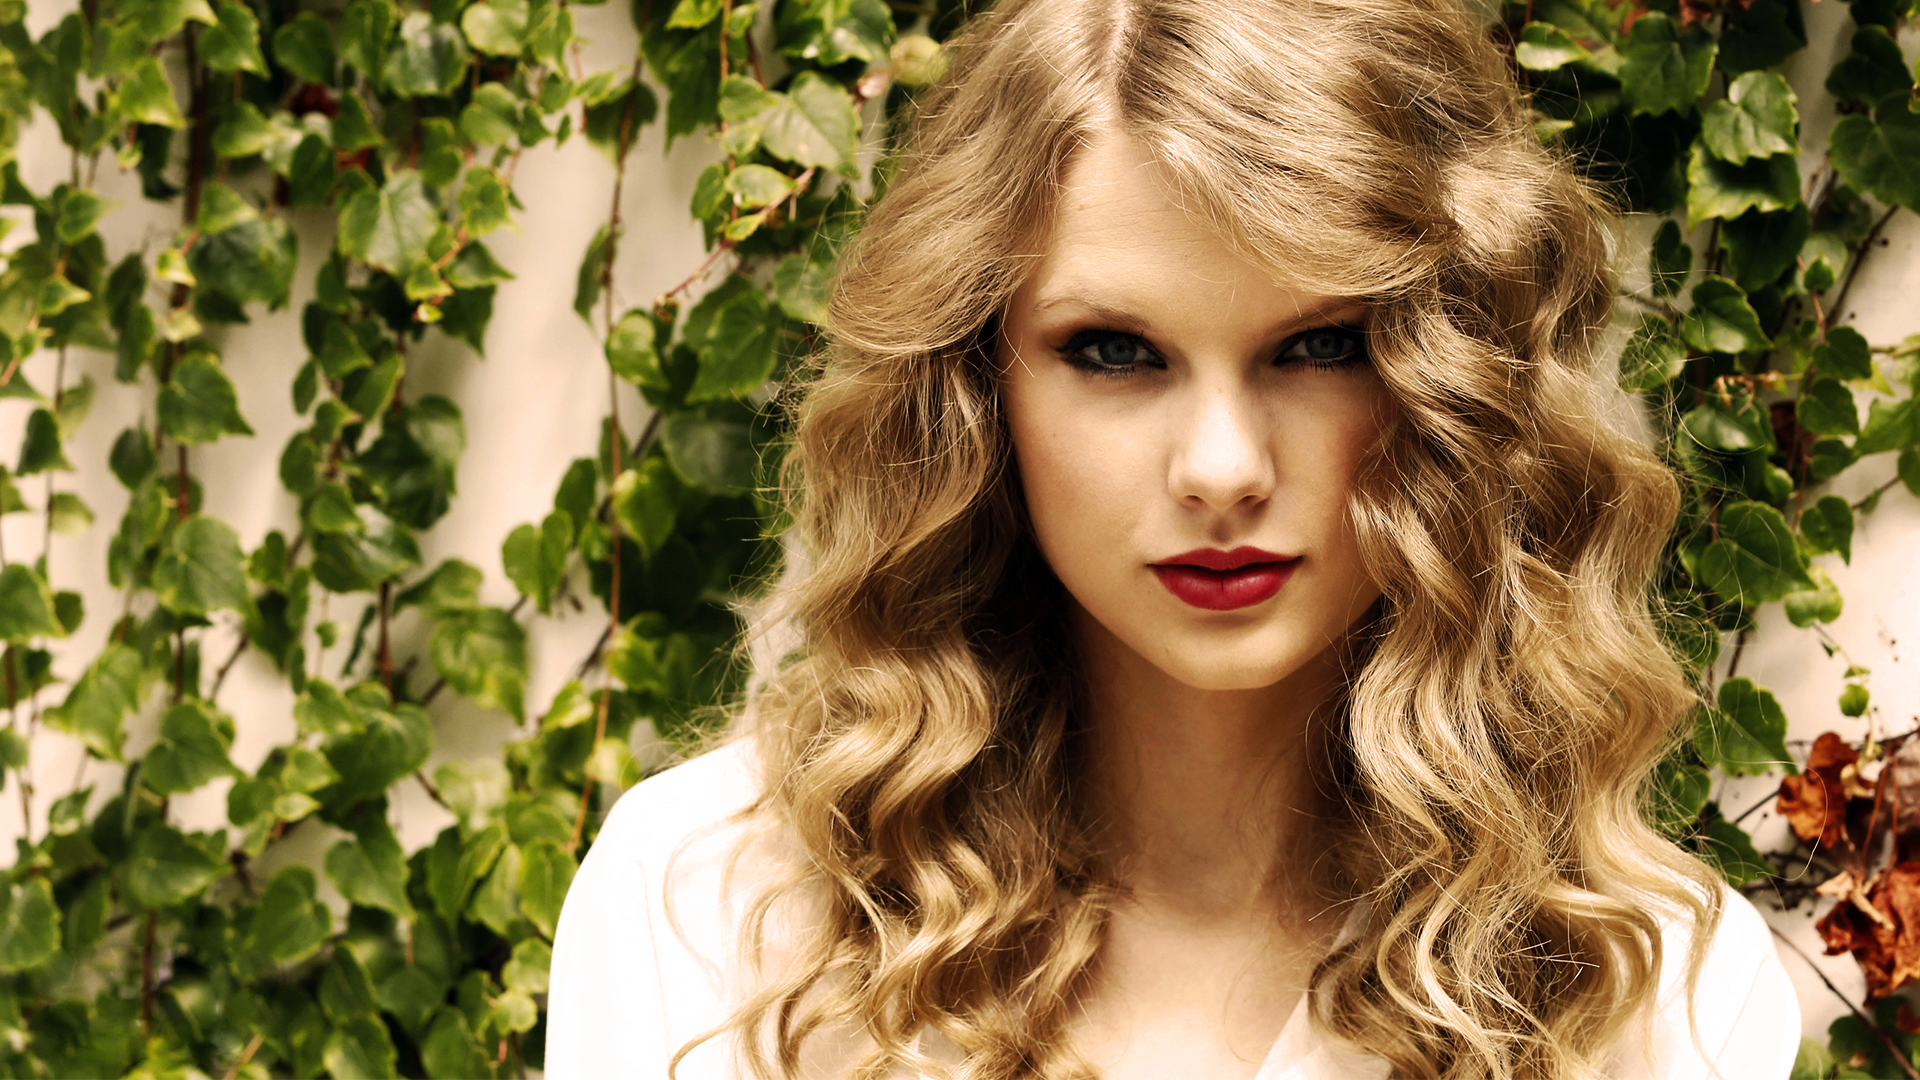 Taylor swift wallpapers pictures images taylor swift full hd wallpaper 1920x1080 voltagebd Image collections